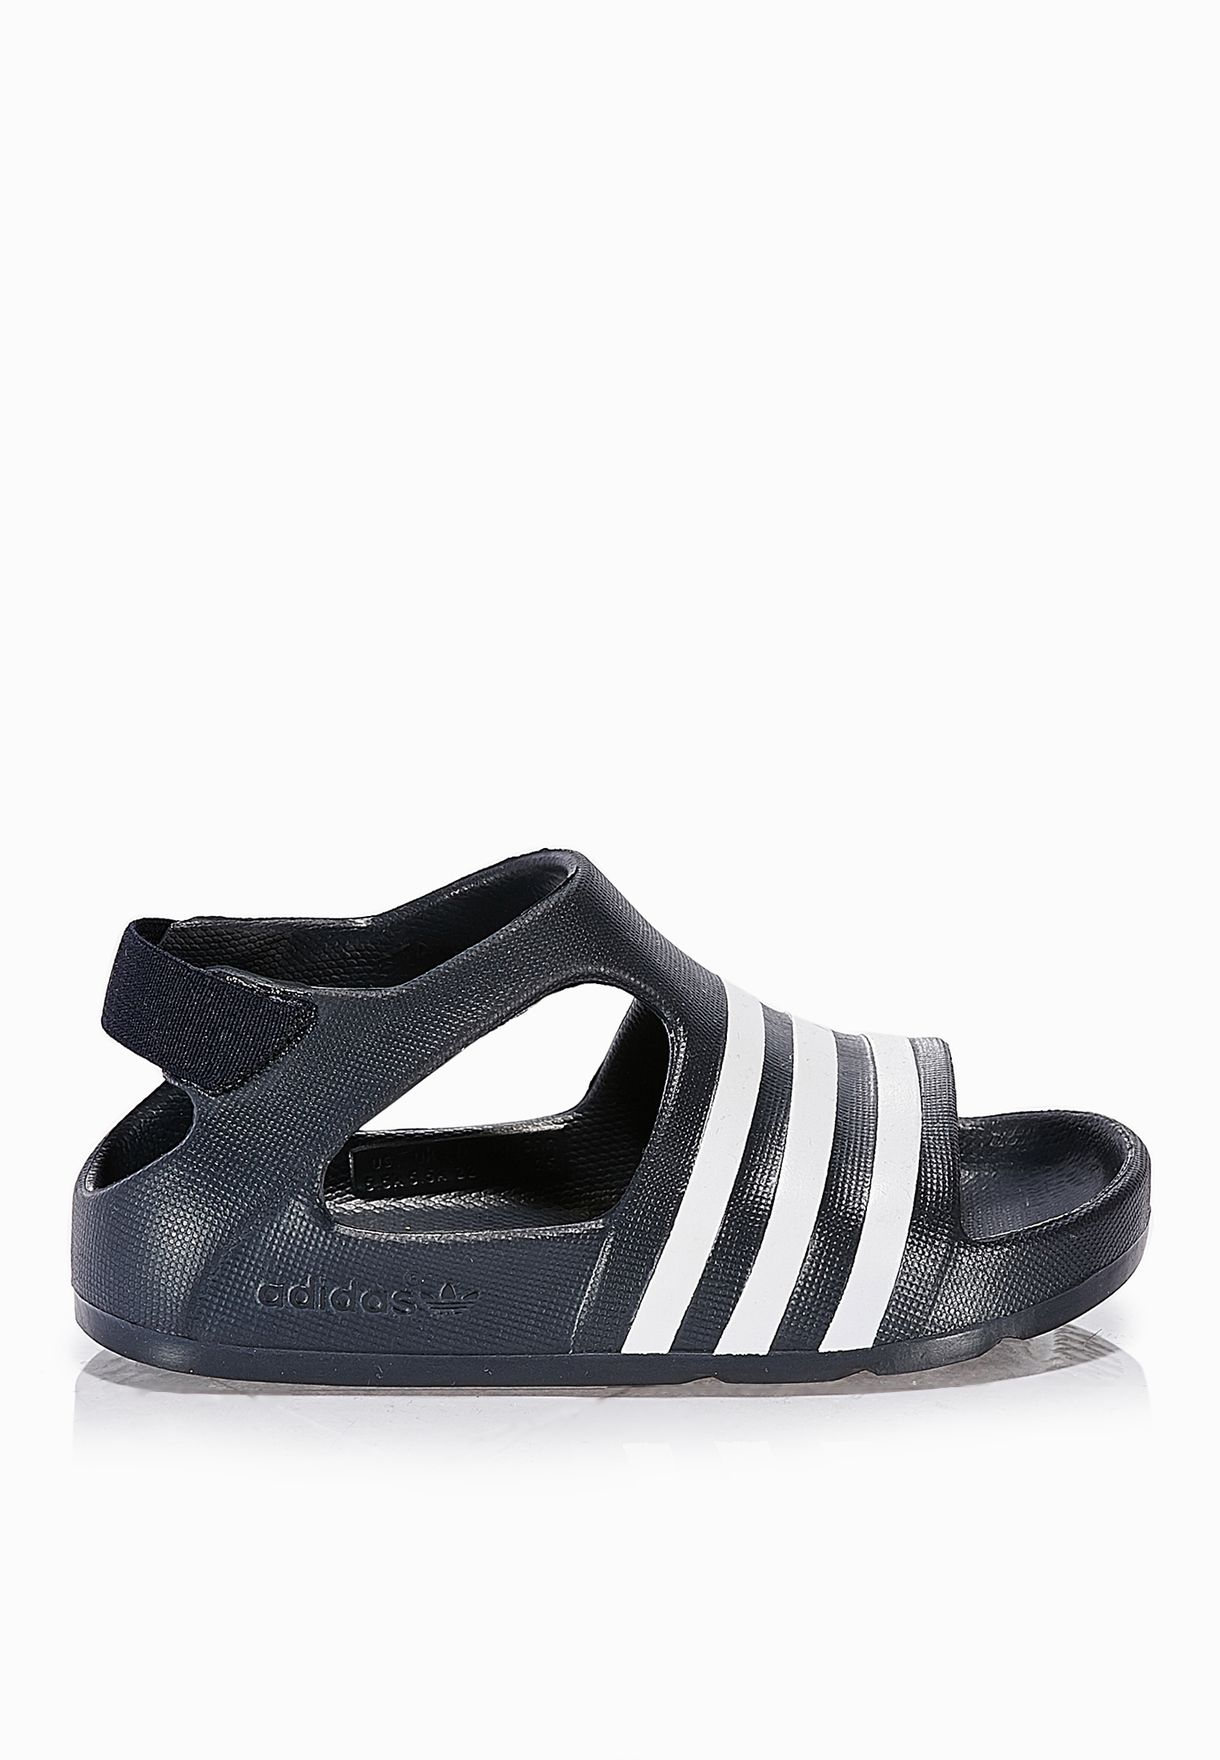 b319e6b4a69 Shop adidas Originals black Adilette Play Infant S74734 for Kids in ...